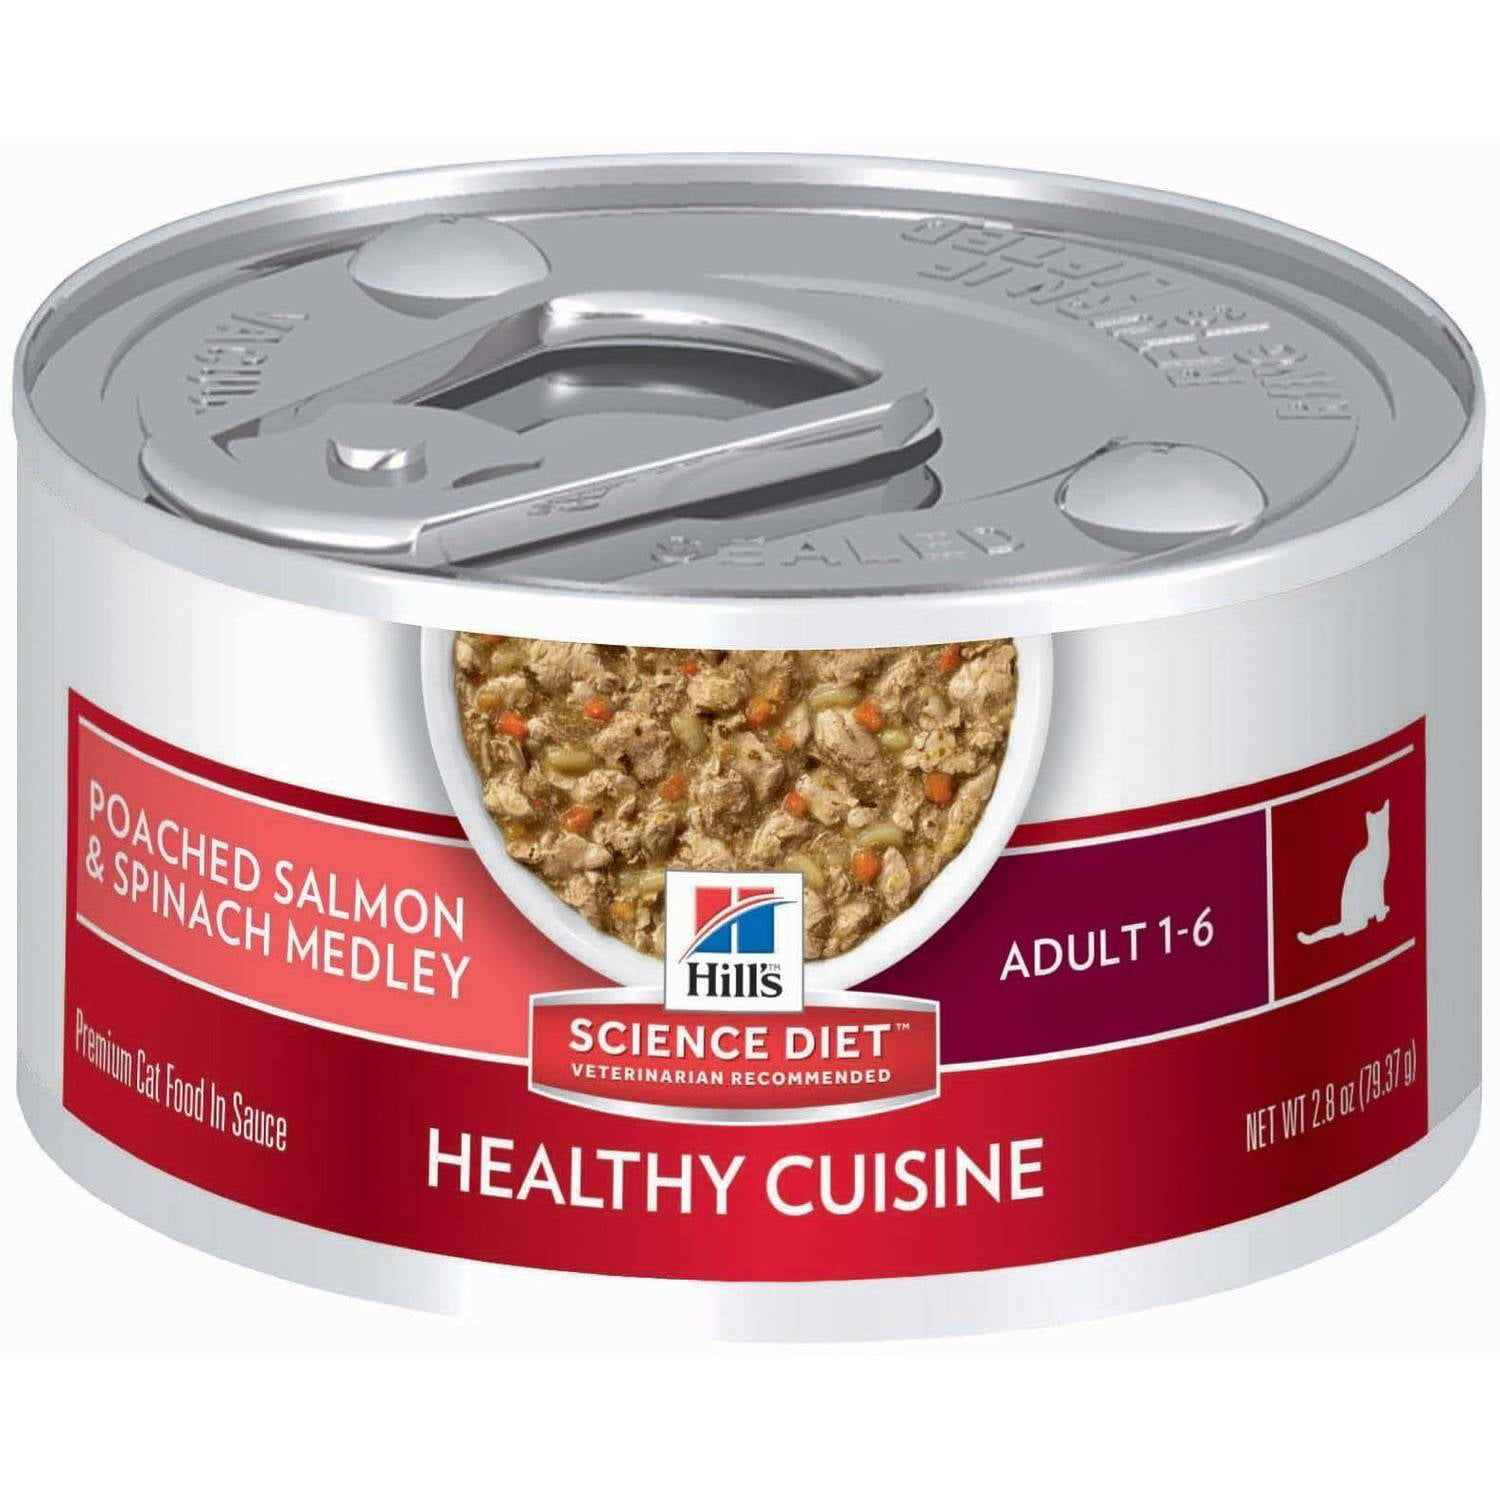 Hill's Science Diet Adult Healthy Cuisine Poached Salmon & Spinach Medley Canned Cat Food, 2.8 oz, 24-pack by Colgate-Palmolive Company